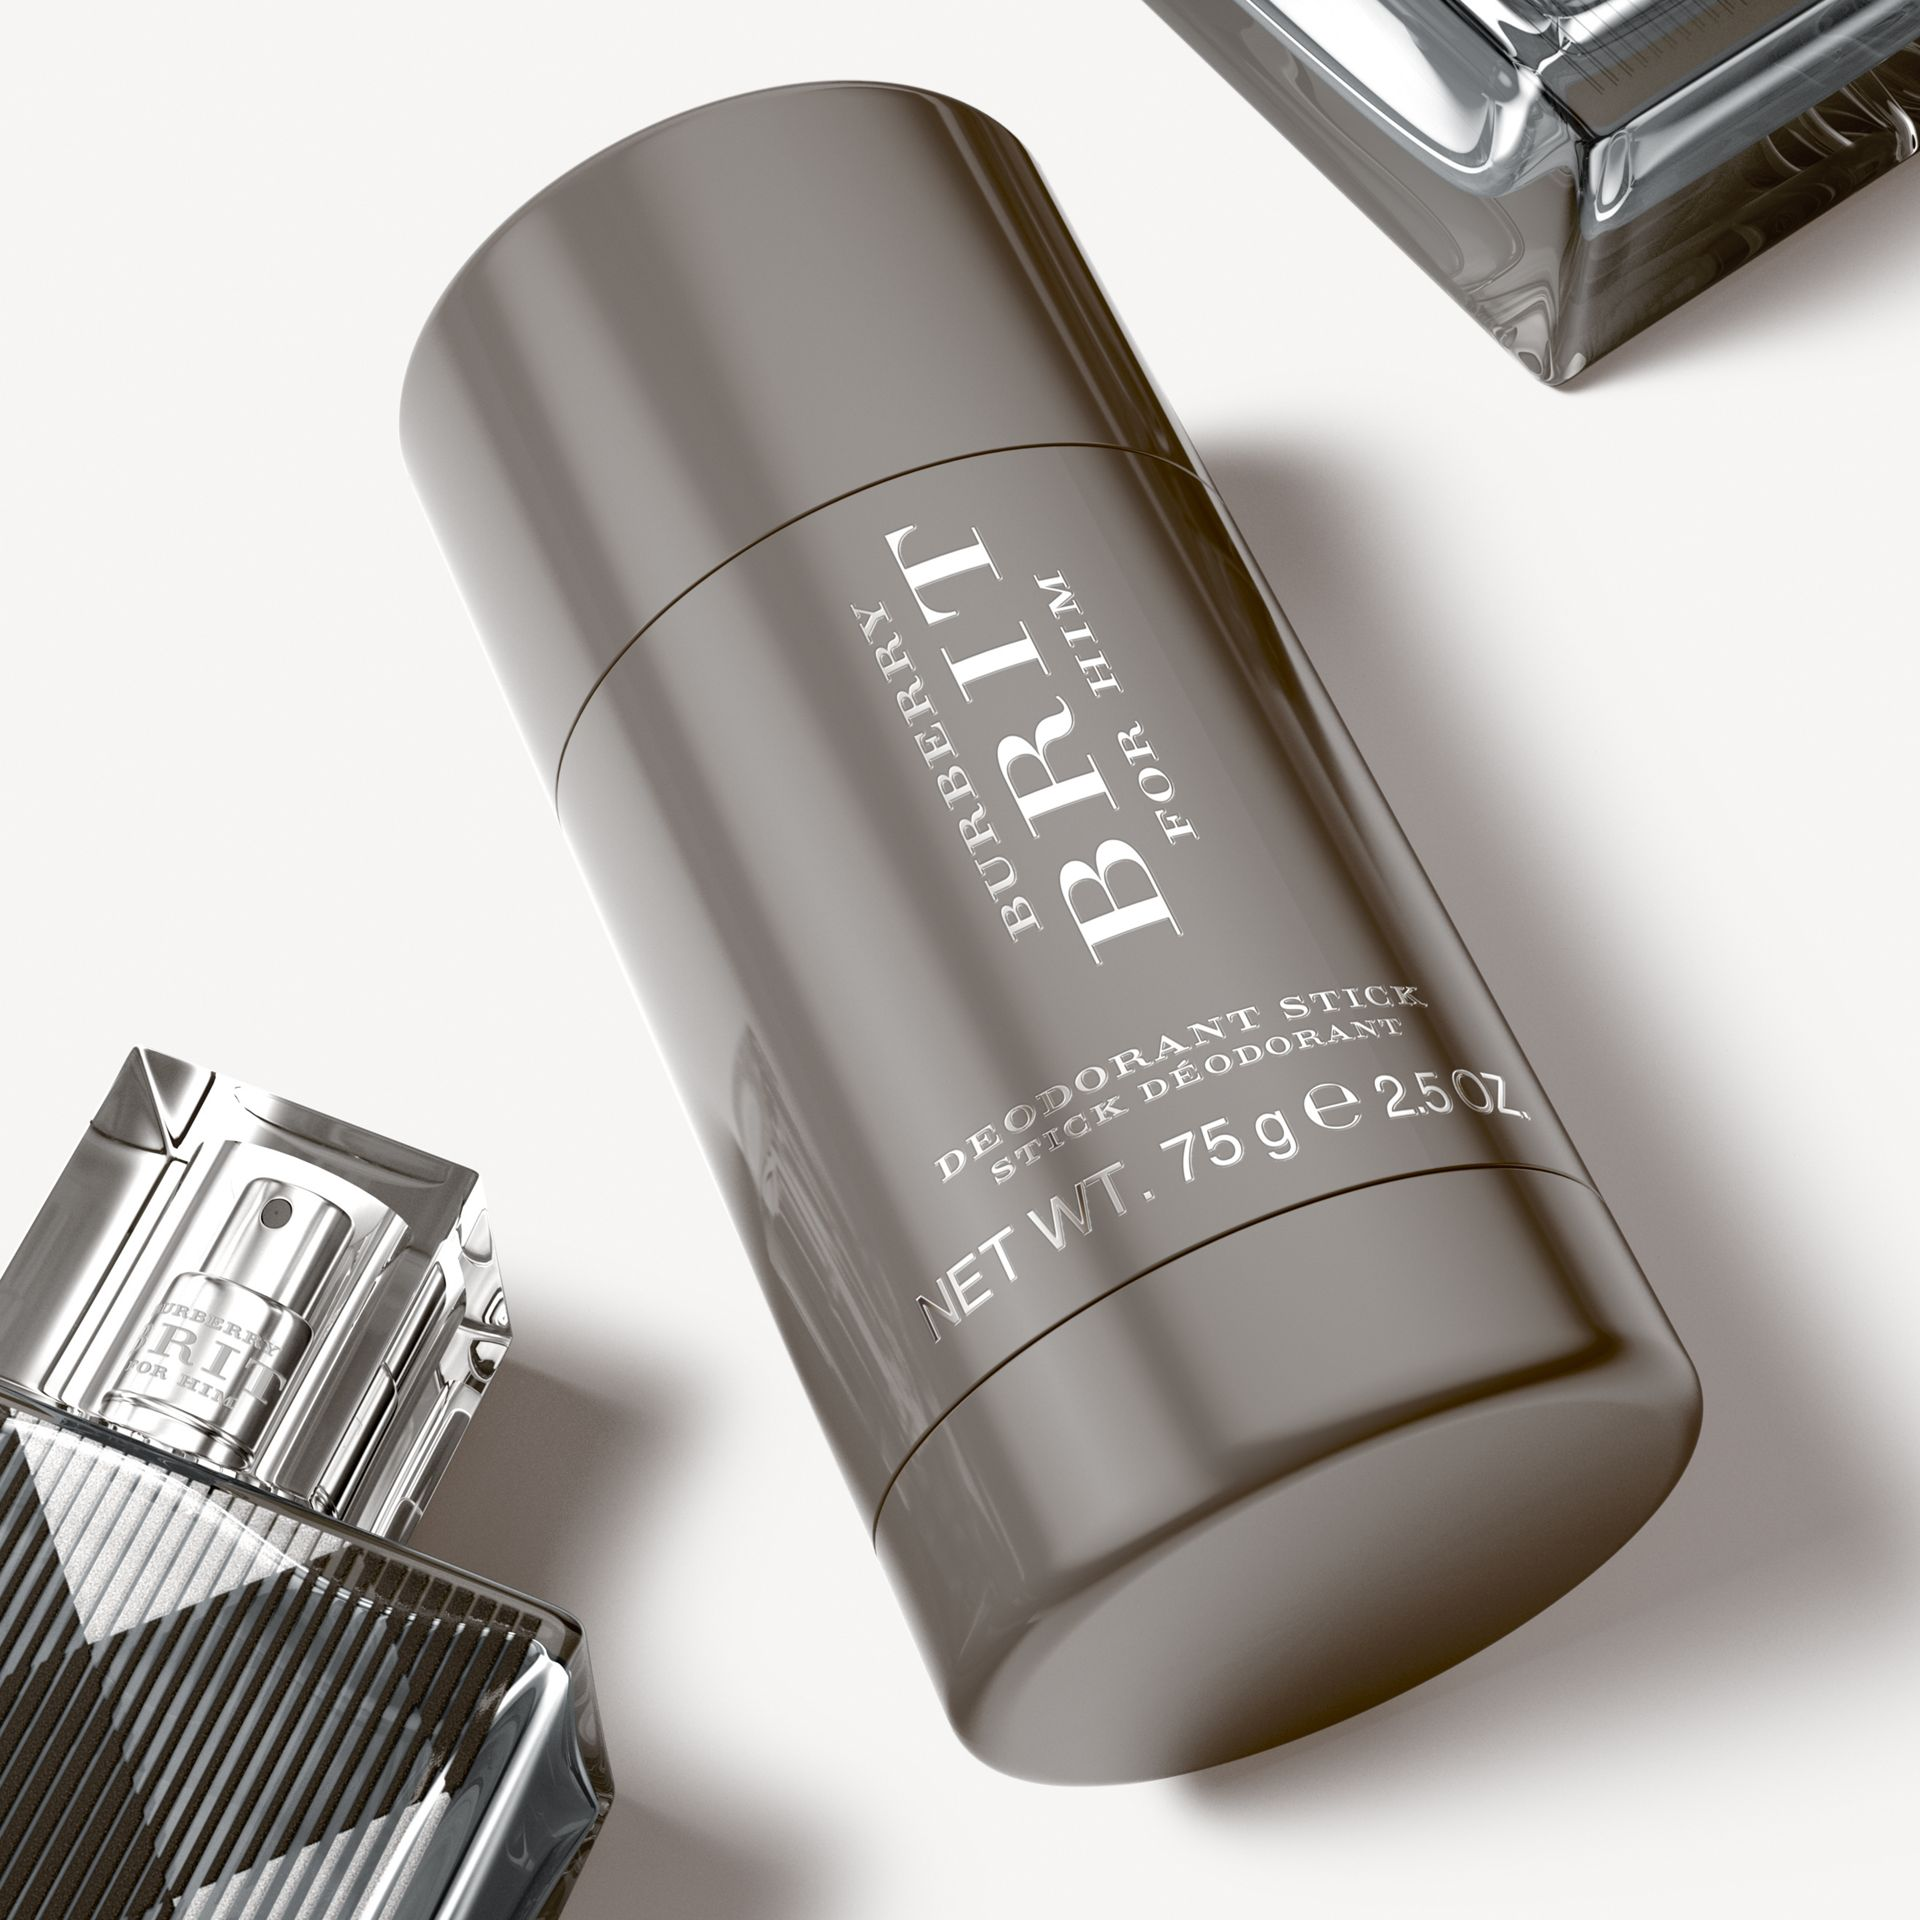 Burberry Brit For Him 香體膏 75g - 圖庫照片 2